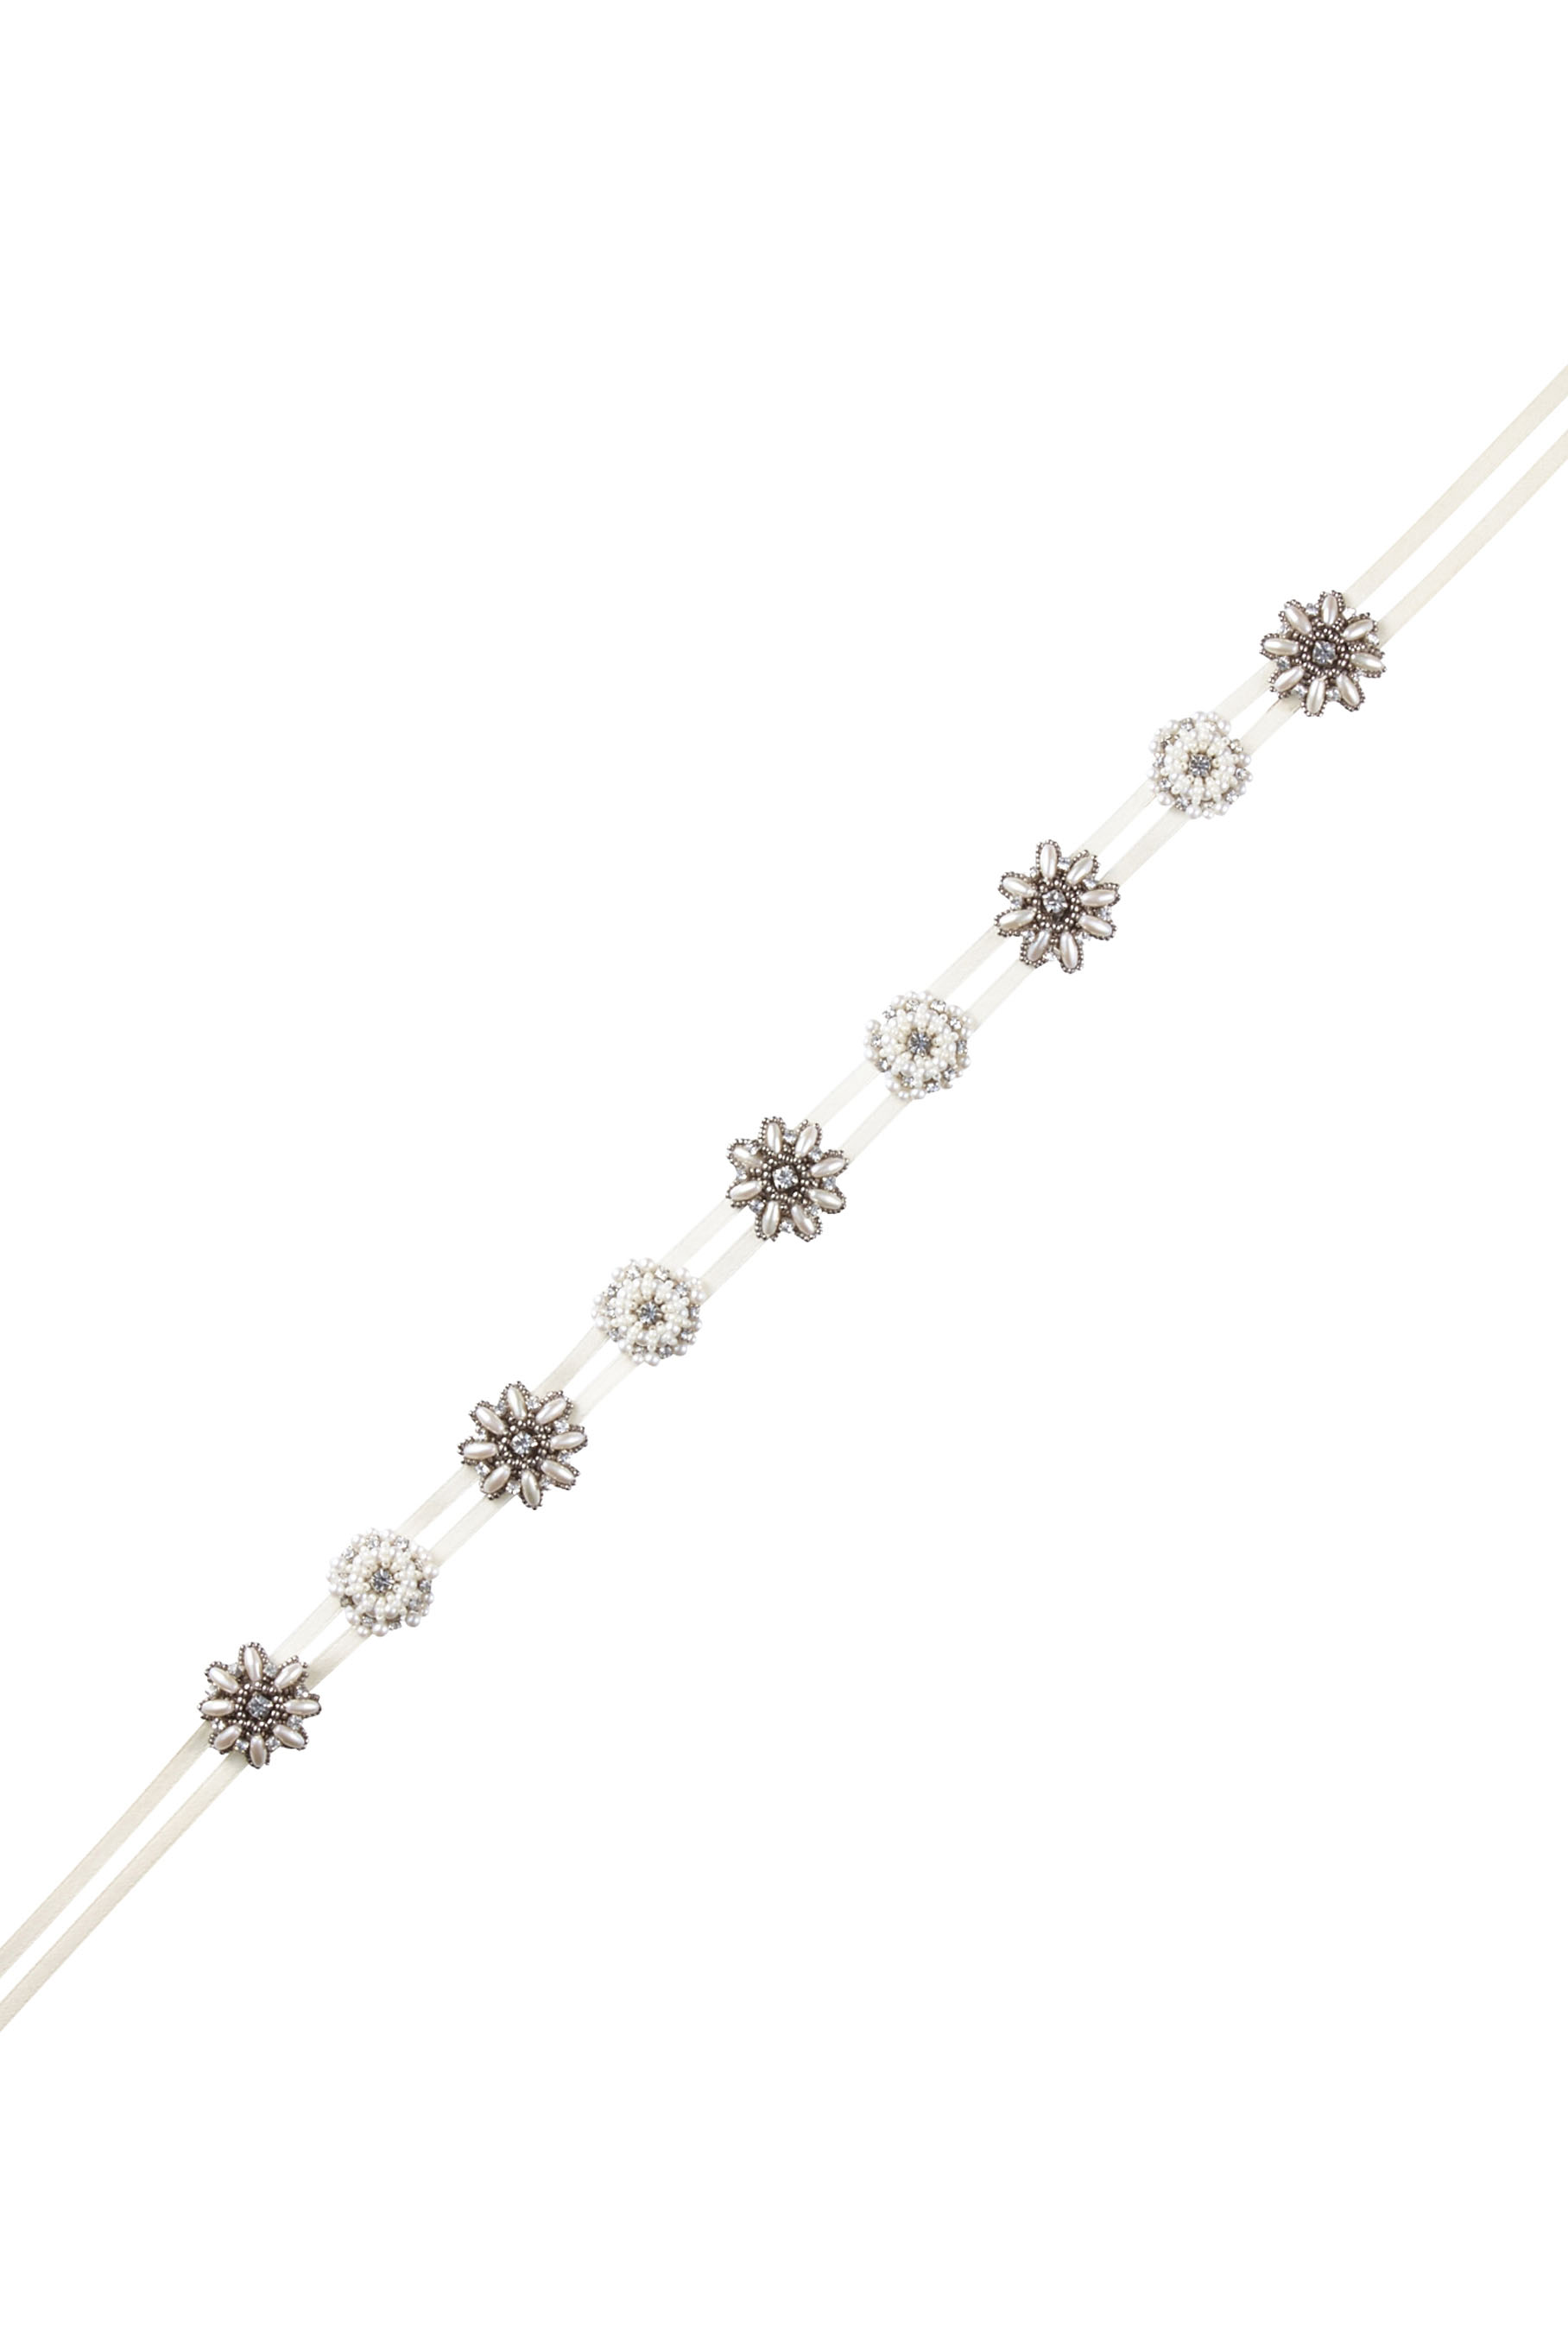 [RENTAL][Head Ribbon Small]by VANILLA CoUTURE(参考価格¥27,000)